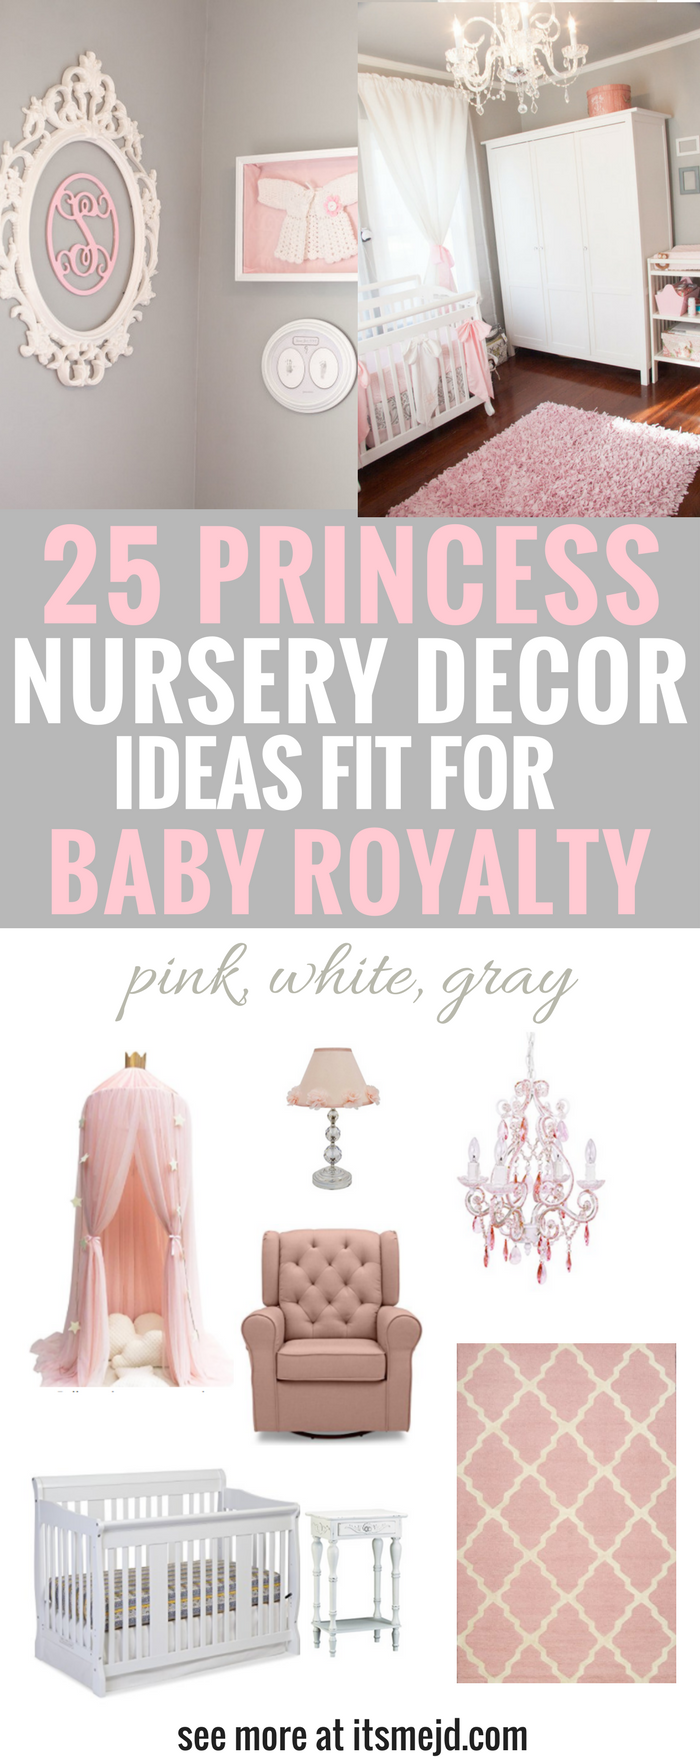 25 Princess Nursery Decor Ideas Fit For Baby Royalty Pink